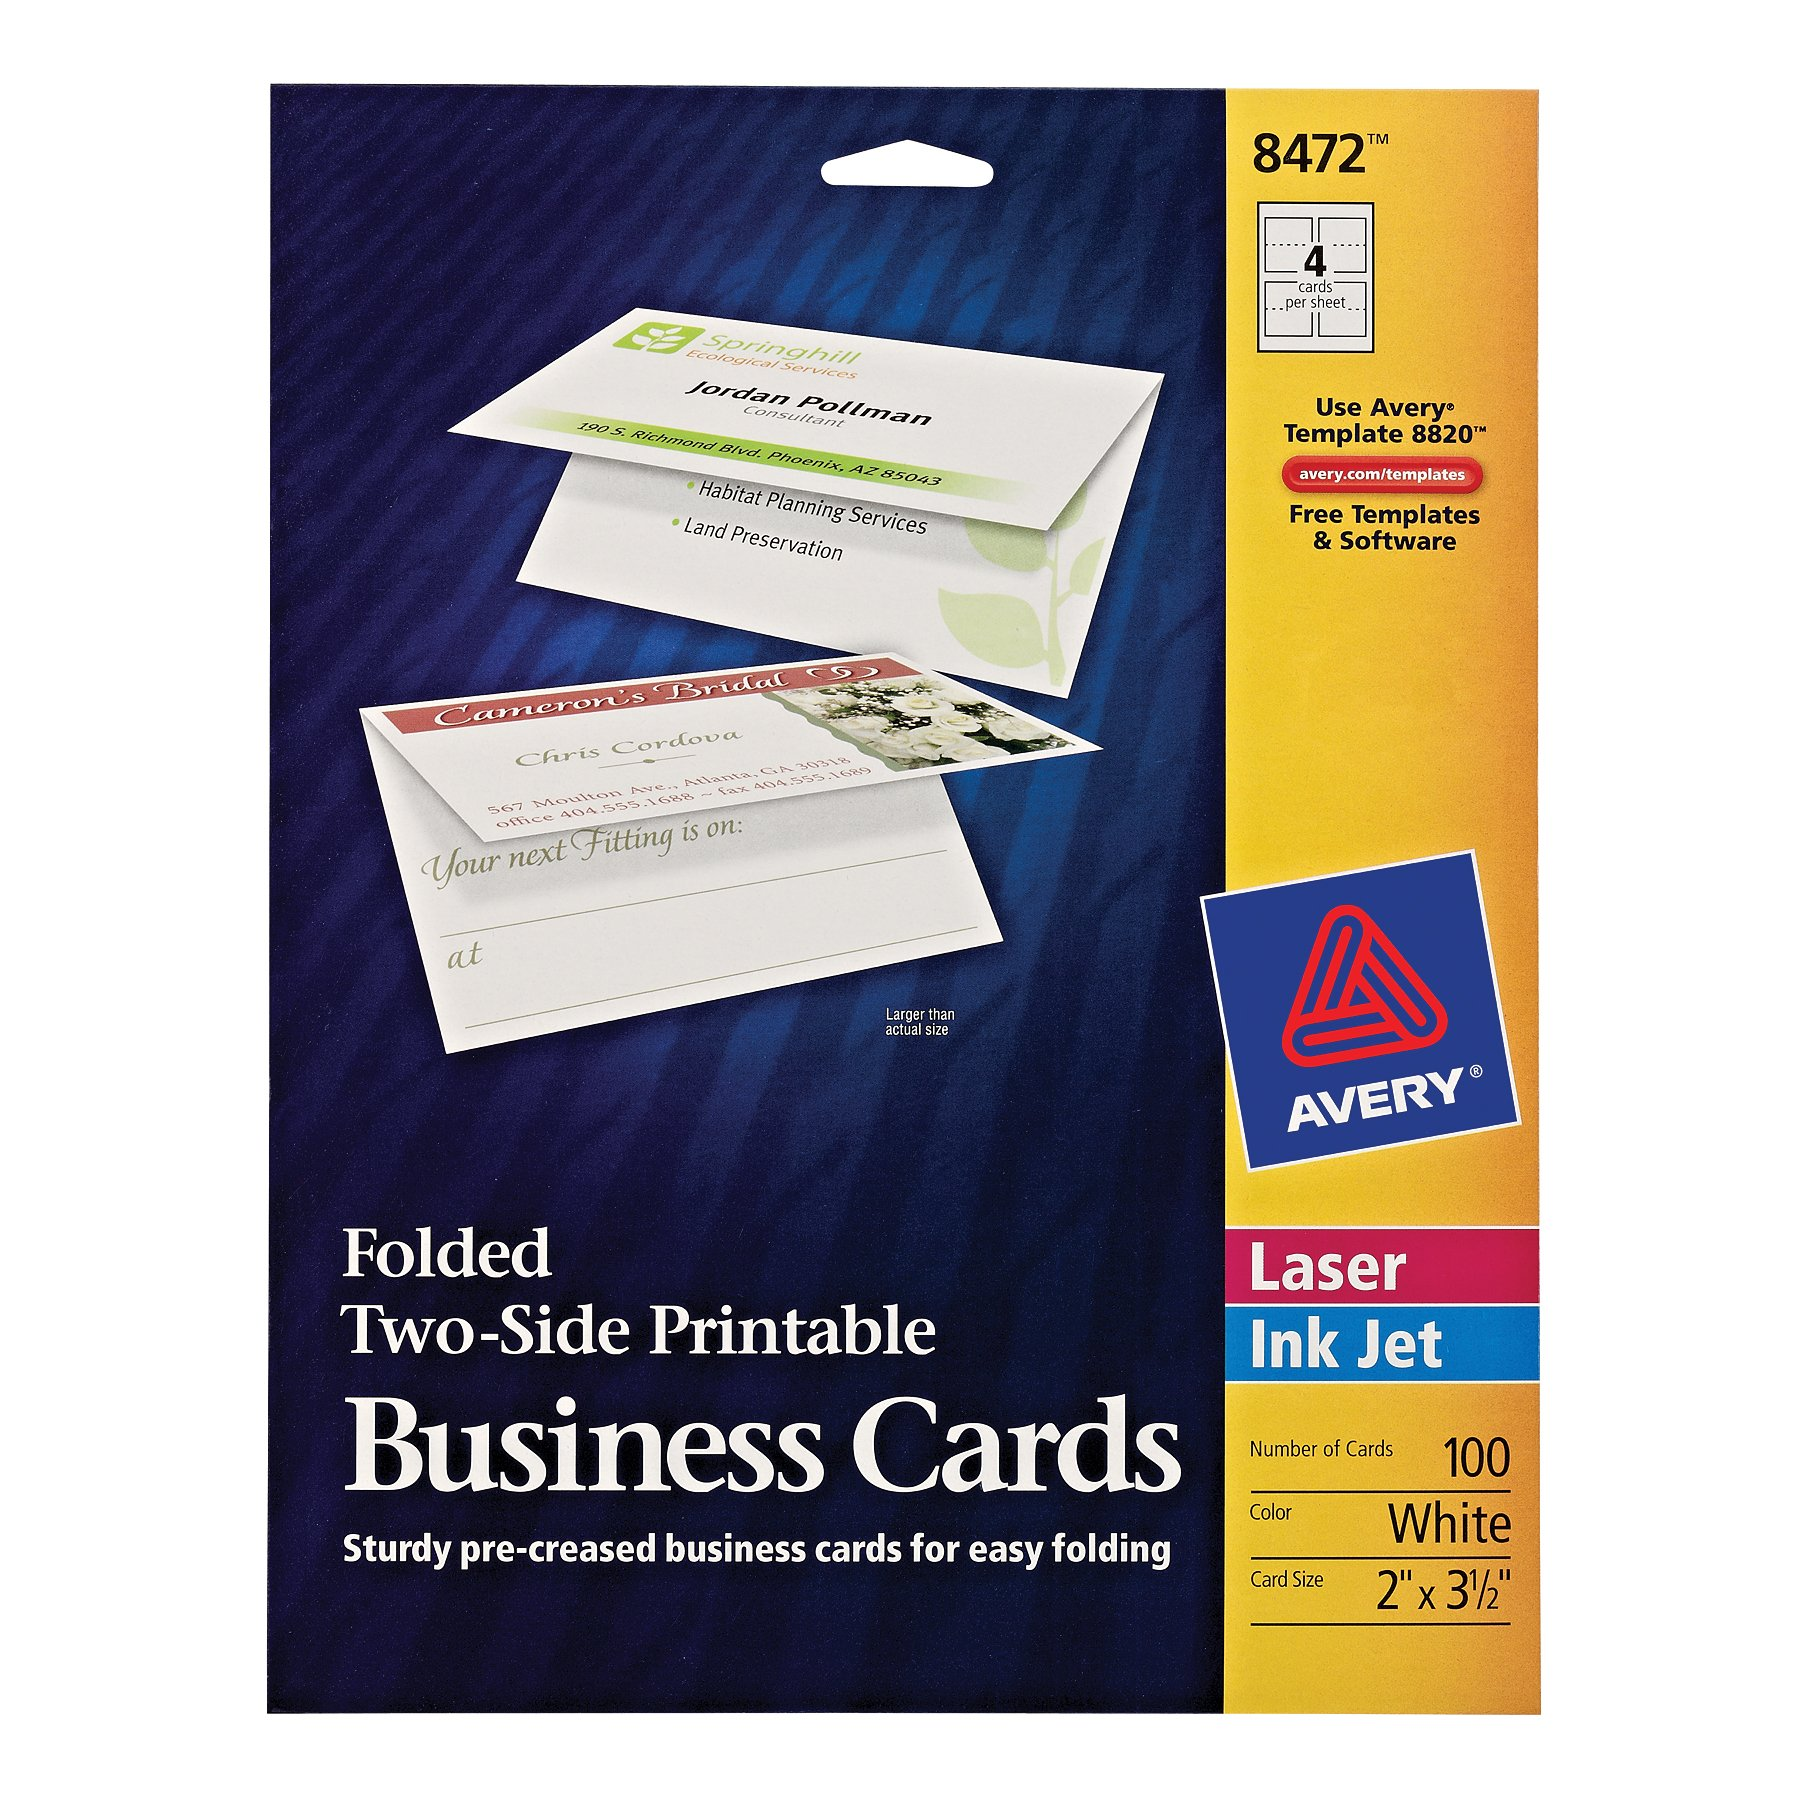 Avery Folded Two-Side Printable Business Cards, Laser/InkJet, White, Uncoated , Pack of 100 (8472)